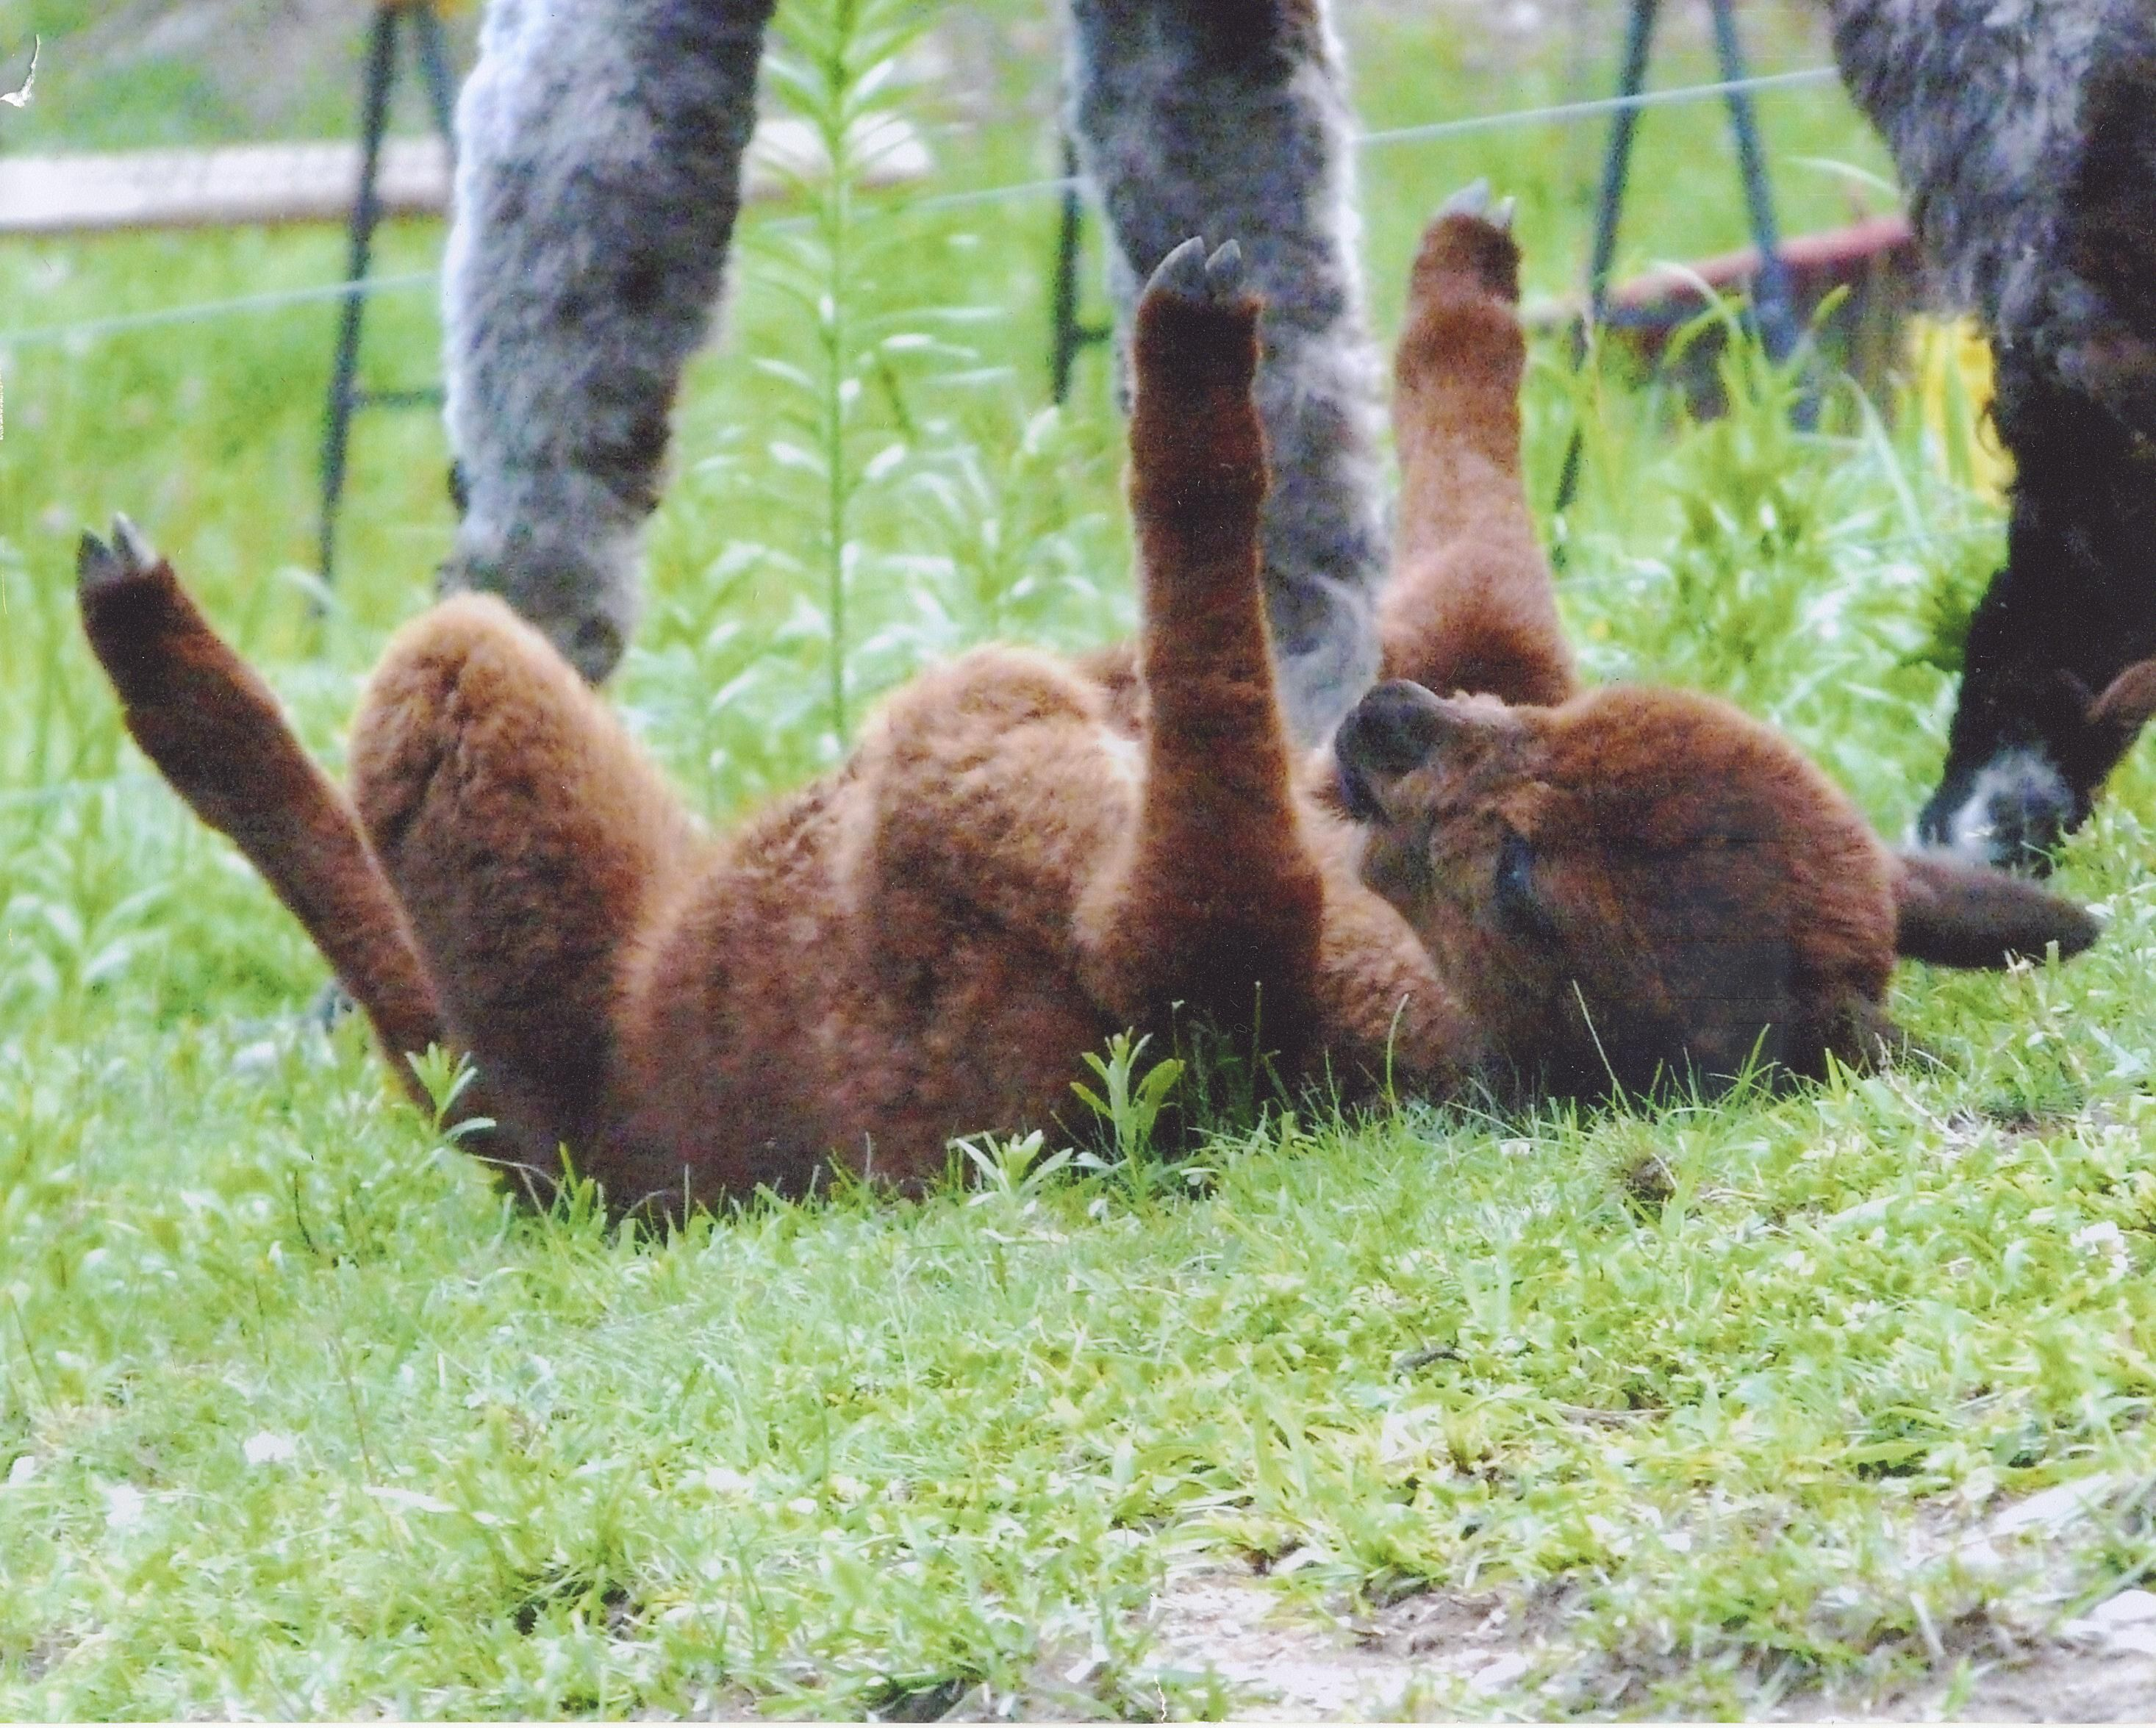 Best Alpacas Images On Pinterest Baby Animals Beautiful And - 22 hilarious alpaca hairstyles